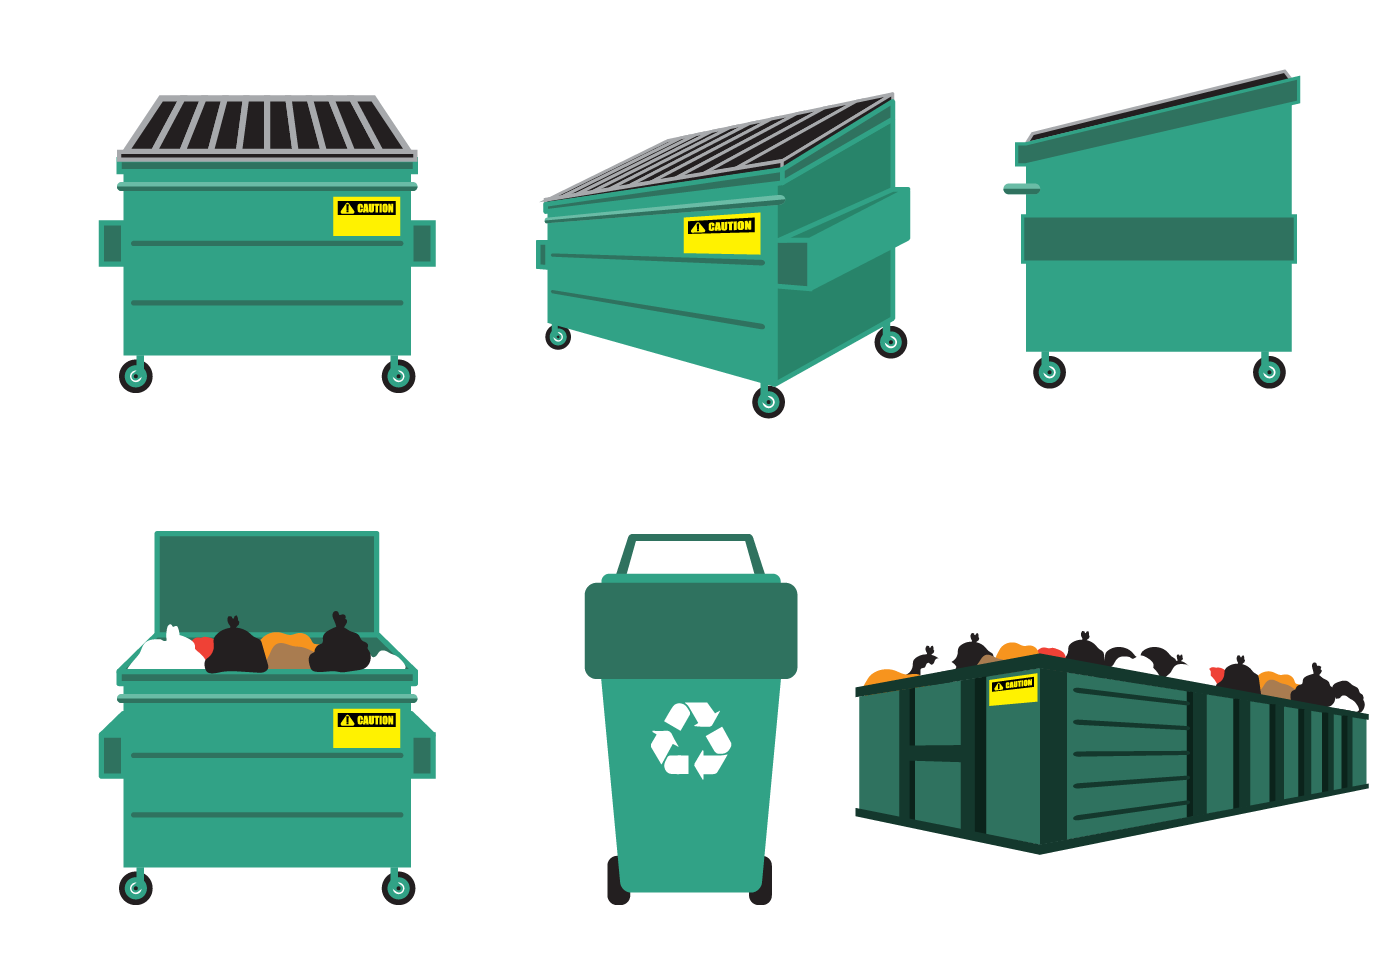 Dumpster pictures clipart graphic royalty free stock Trash Dumpster Clipart - Clip Art Library graphic royalty free stock